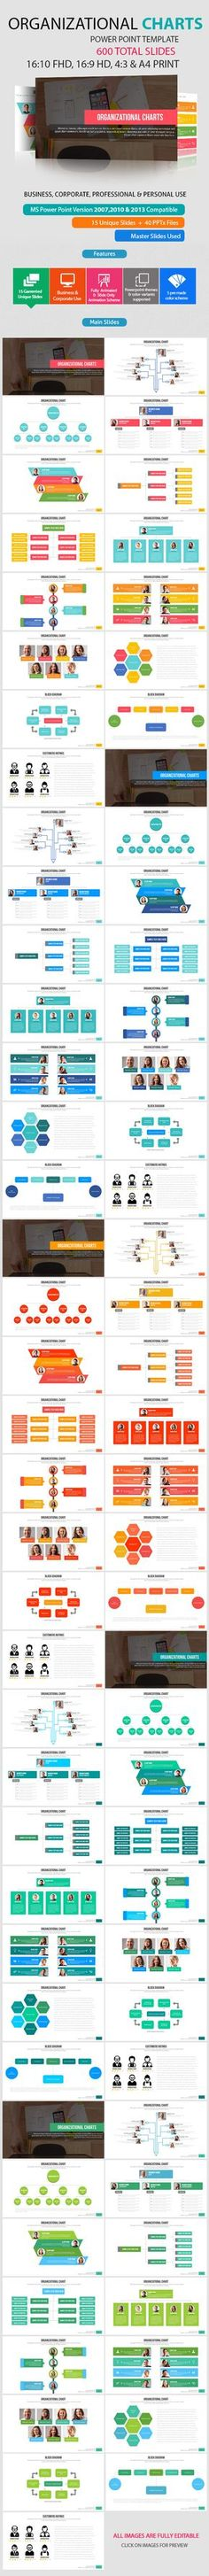 Organizational chart and hierarchy keynote template keynote organizational chart power point presentation abstract powerpoint templates maxwellsz